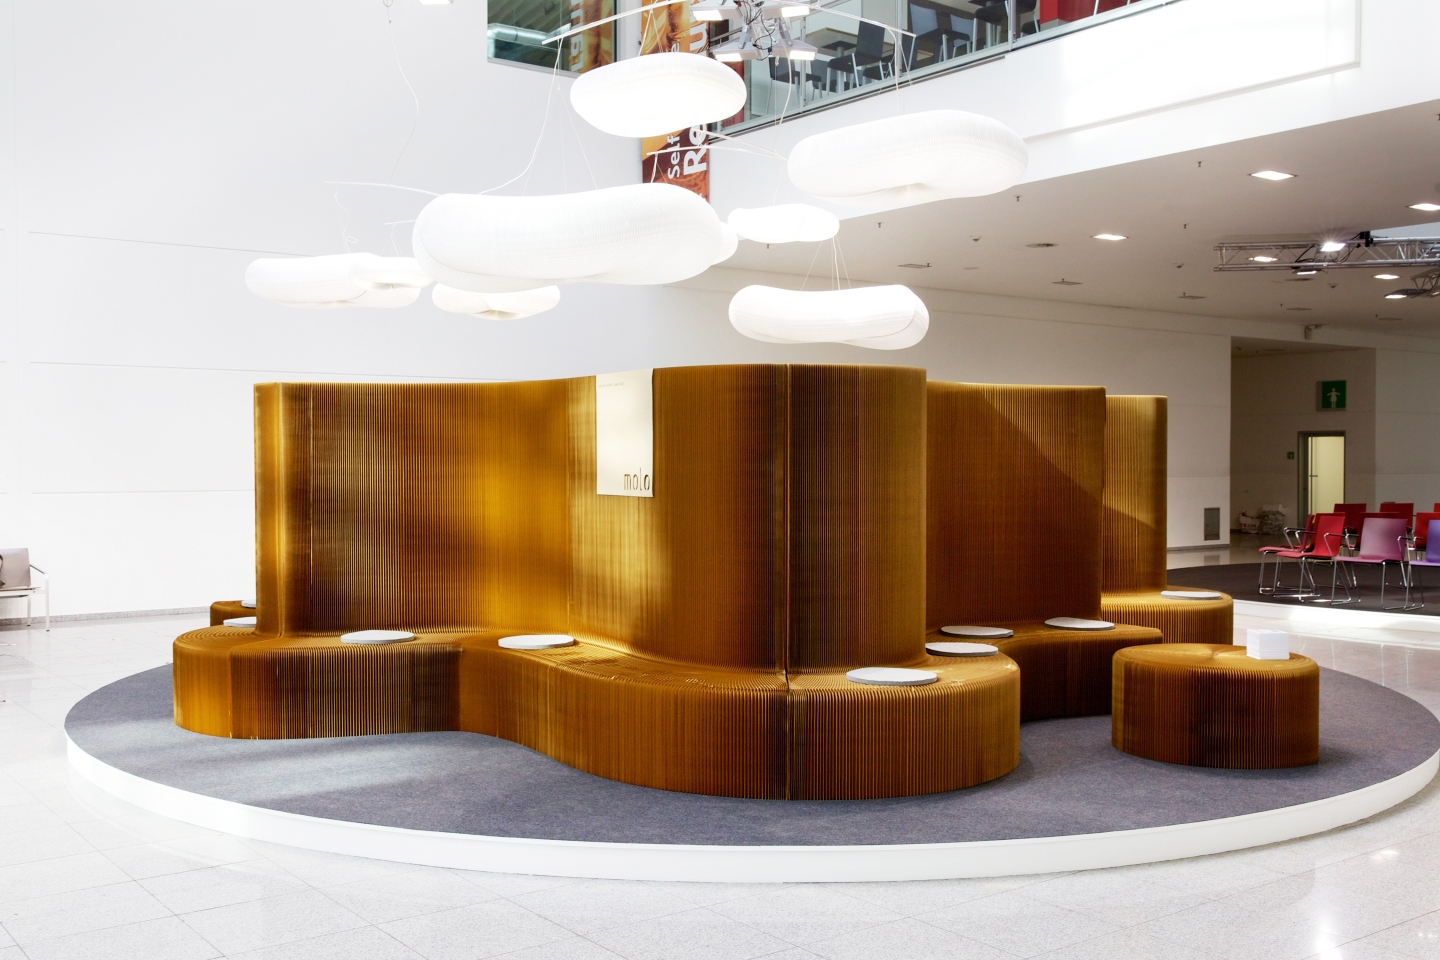 modular paper seating illuminate by its cloud lighting - accordion paper furniture by molo - sunlight glimmers off benchwall's pleated structure